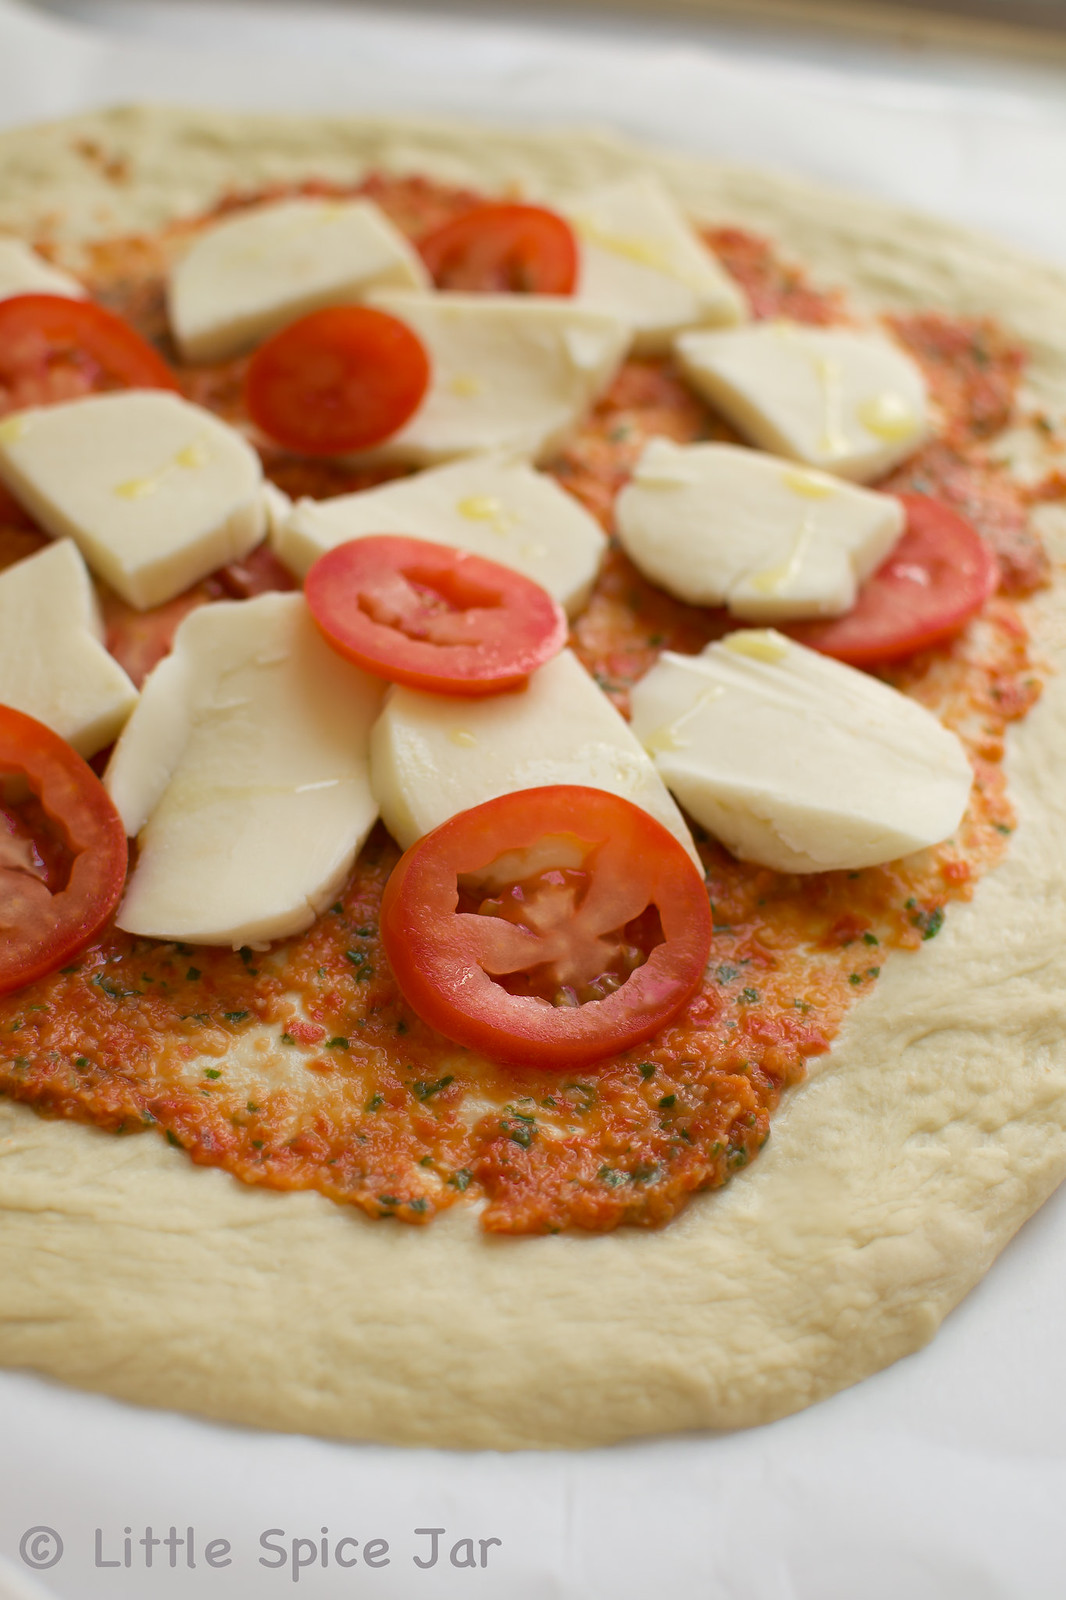 Easy Margherita Pizza Ingredients on Dough